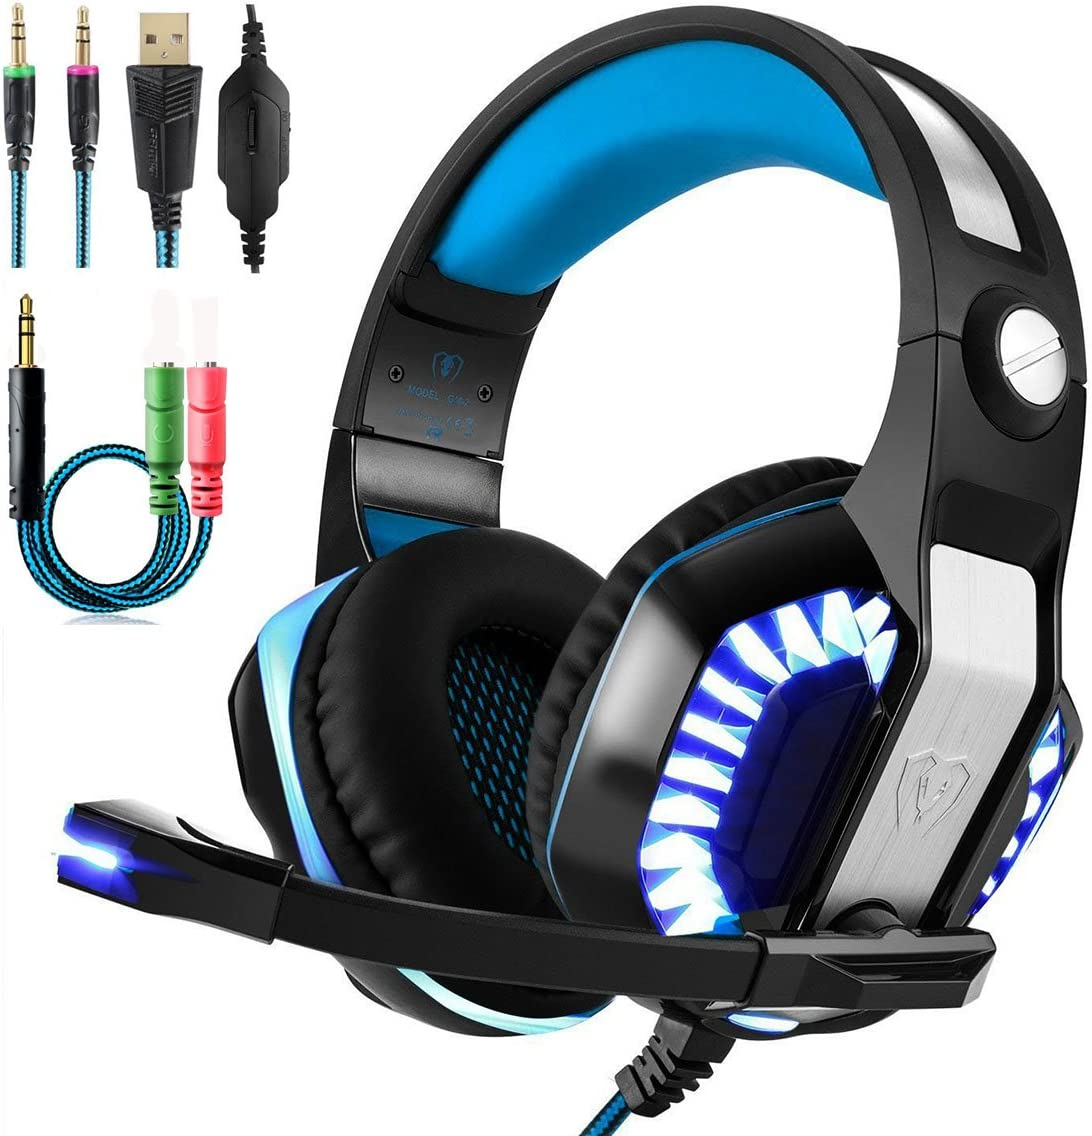 Beexcellent Gaming Headset With Microphone 2017 Newest GM-2 Game Headphone with LED Light for PS4 Xbox 1 Laptop Tablet Mobile Phones PC Blue Black